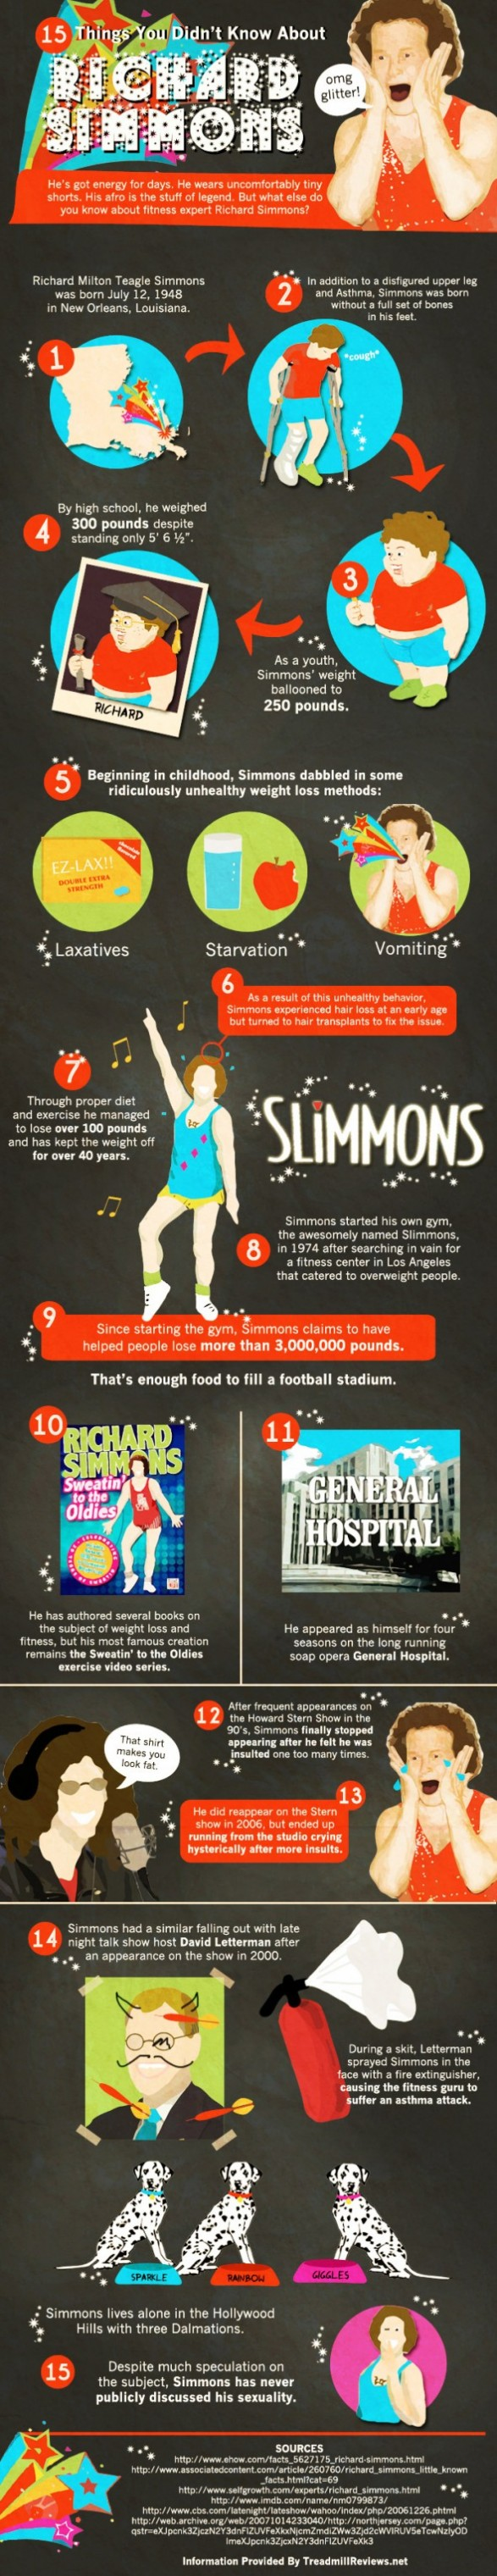 15 Things You Didn't Know About Richard Simmons